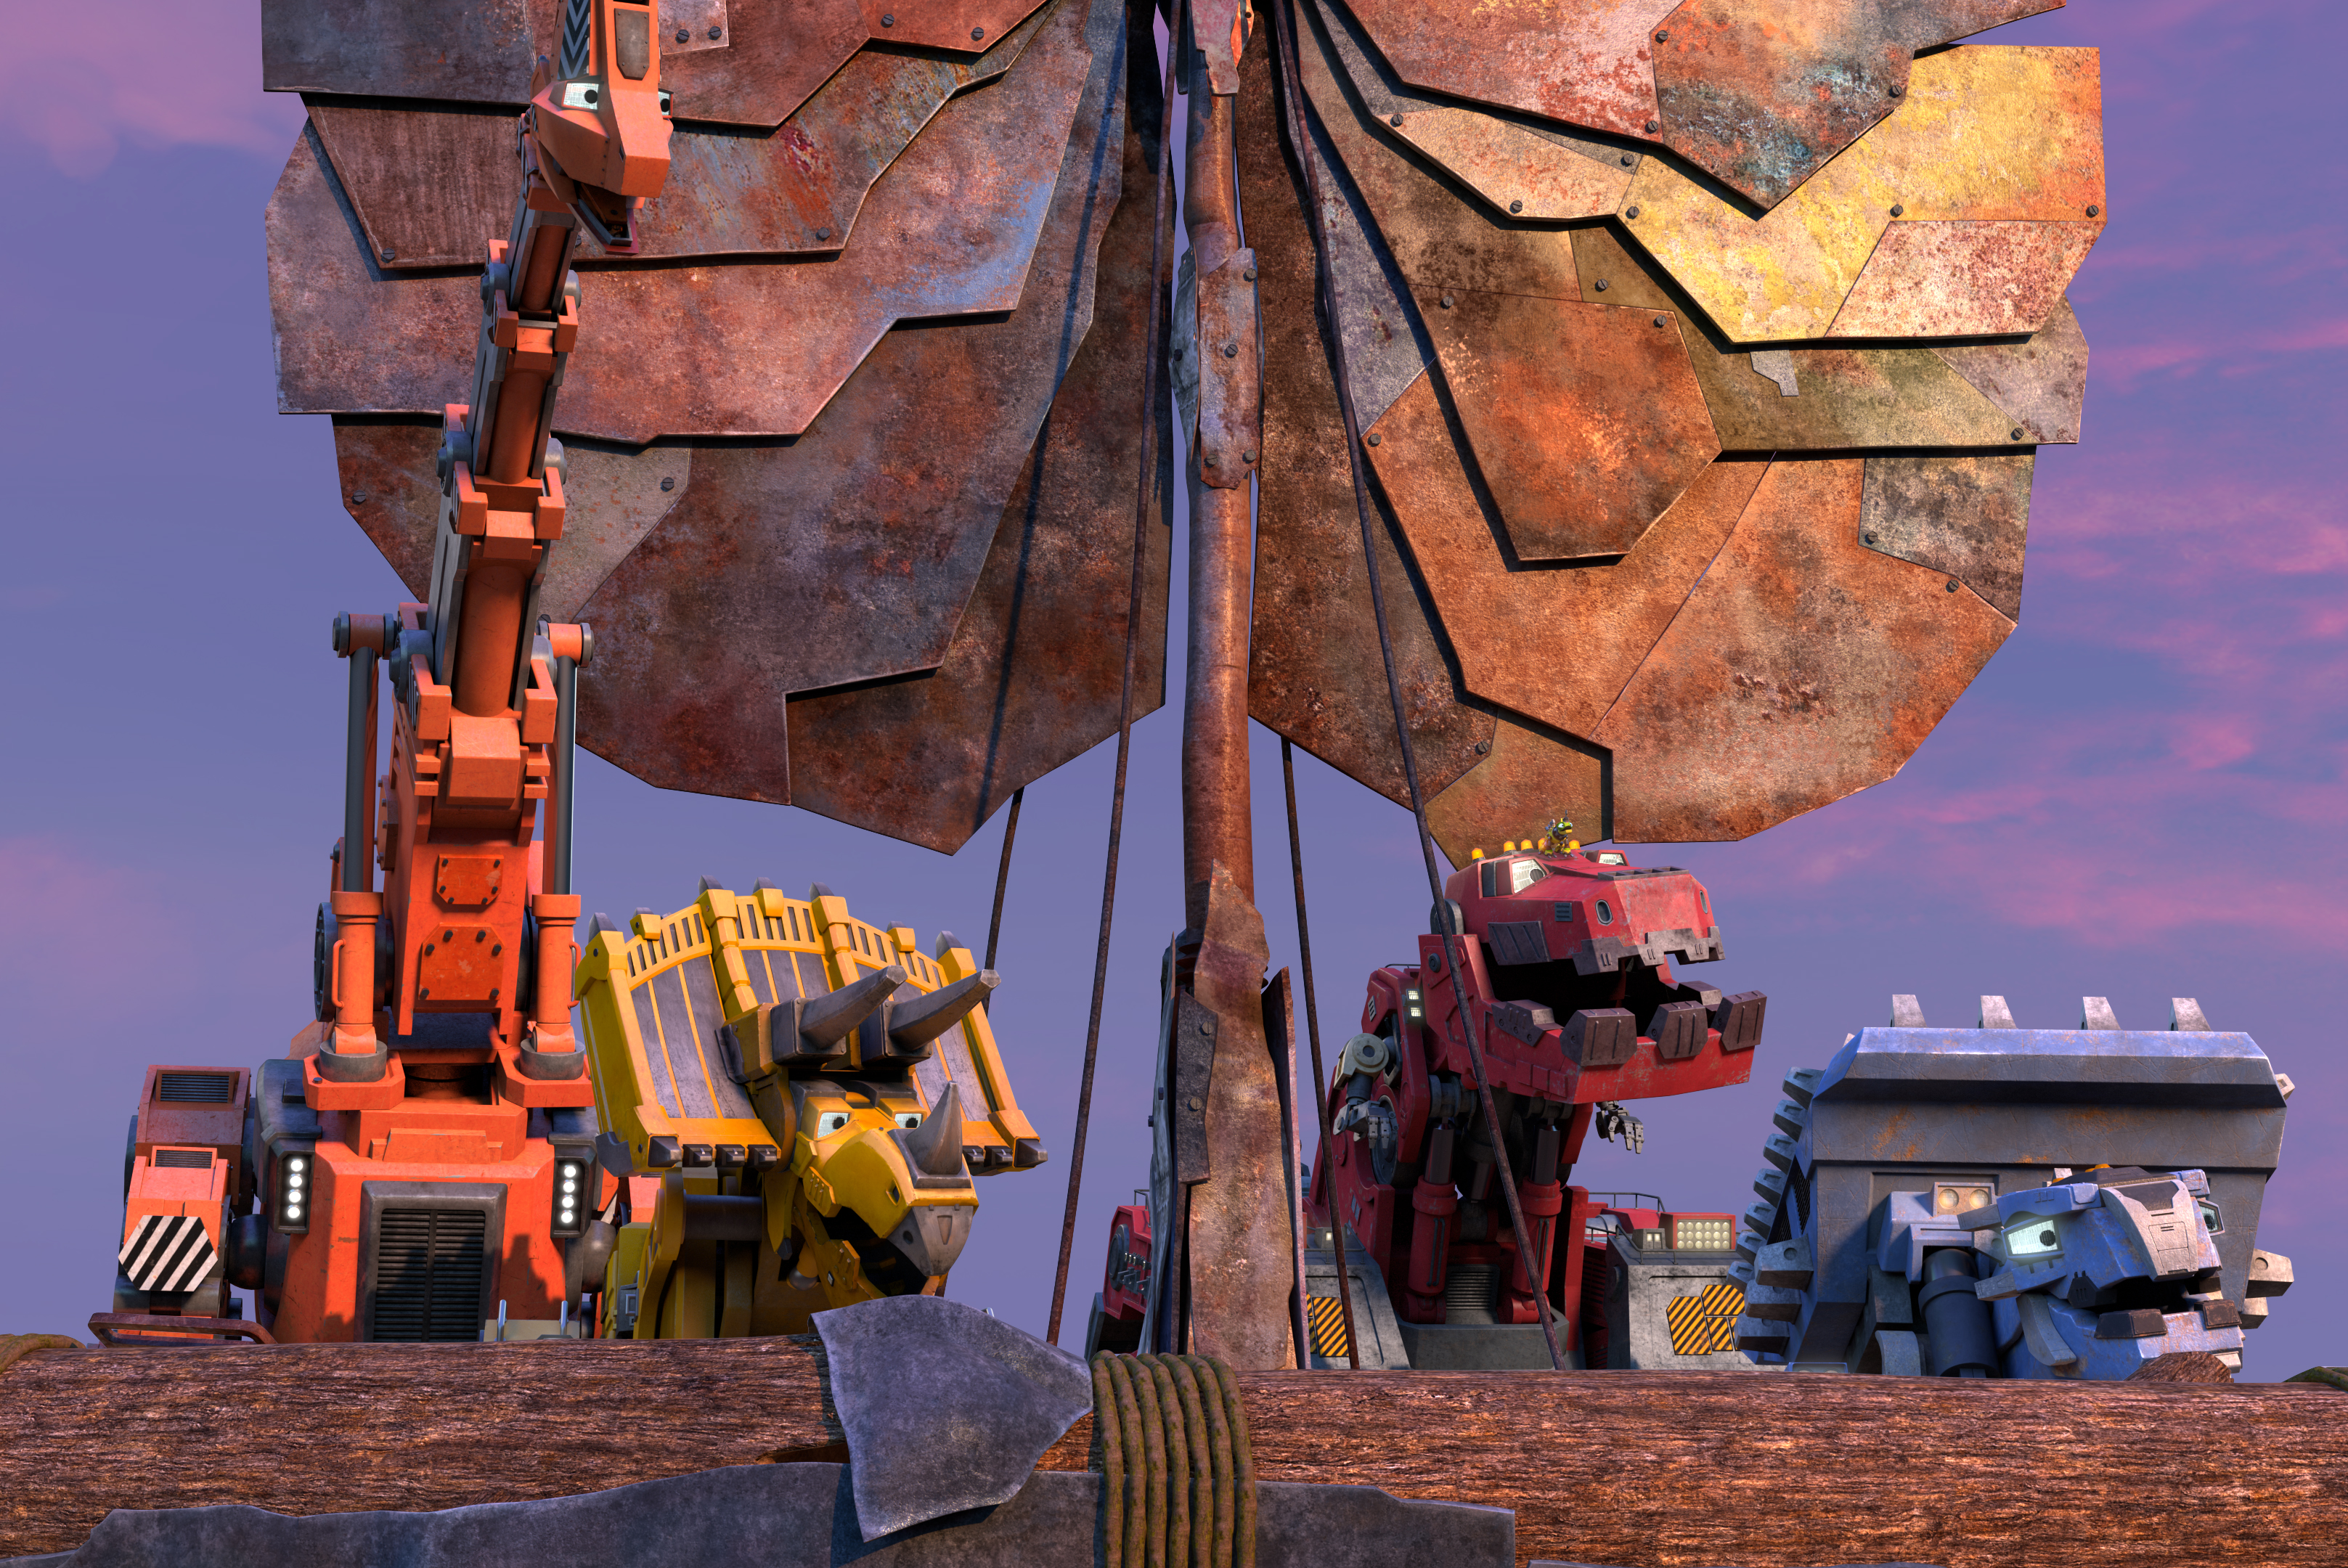 The stars of Dinotrux